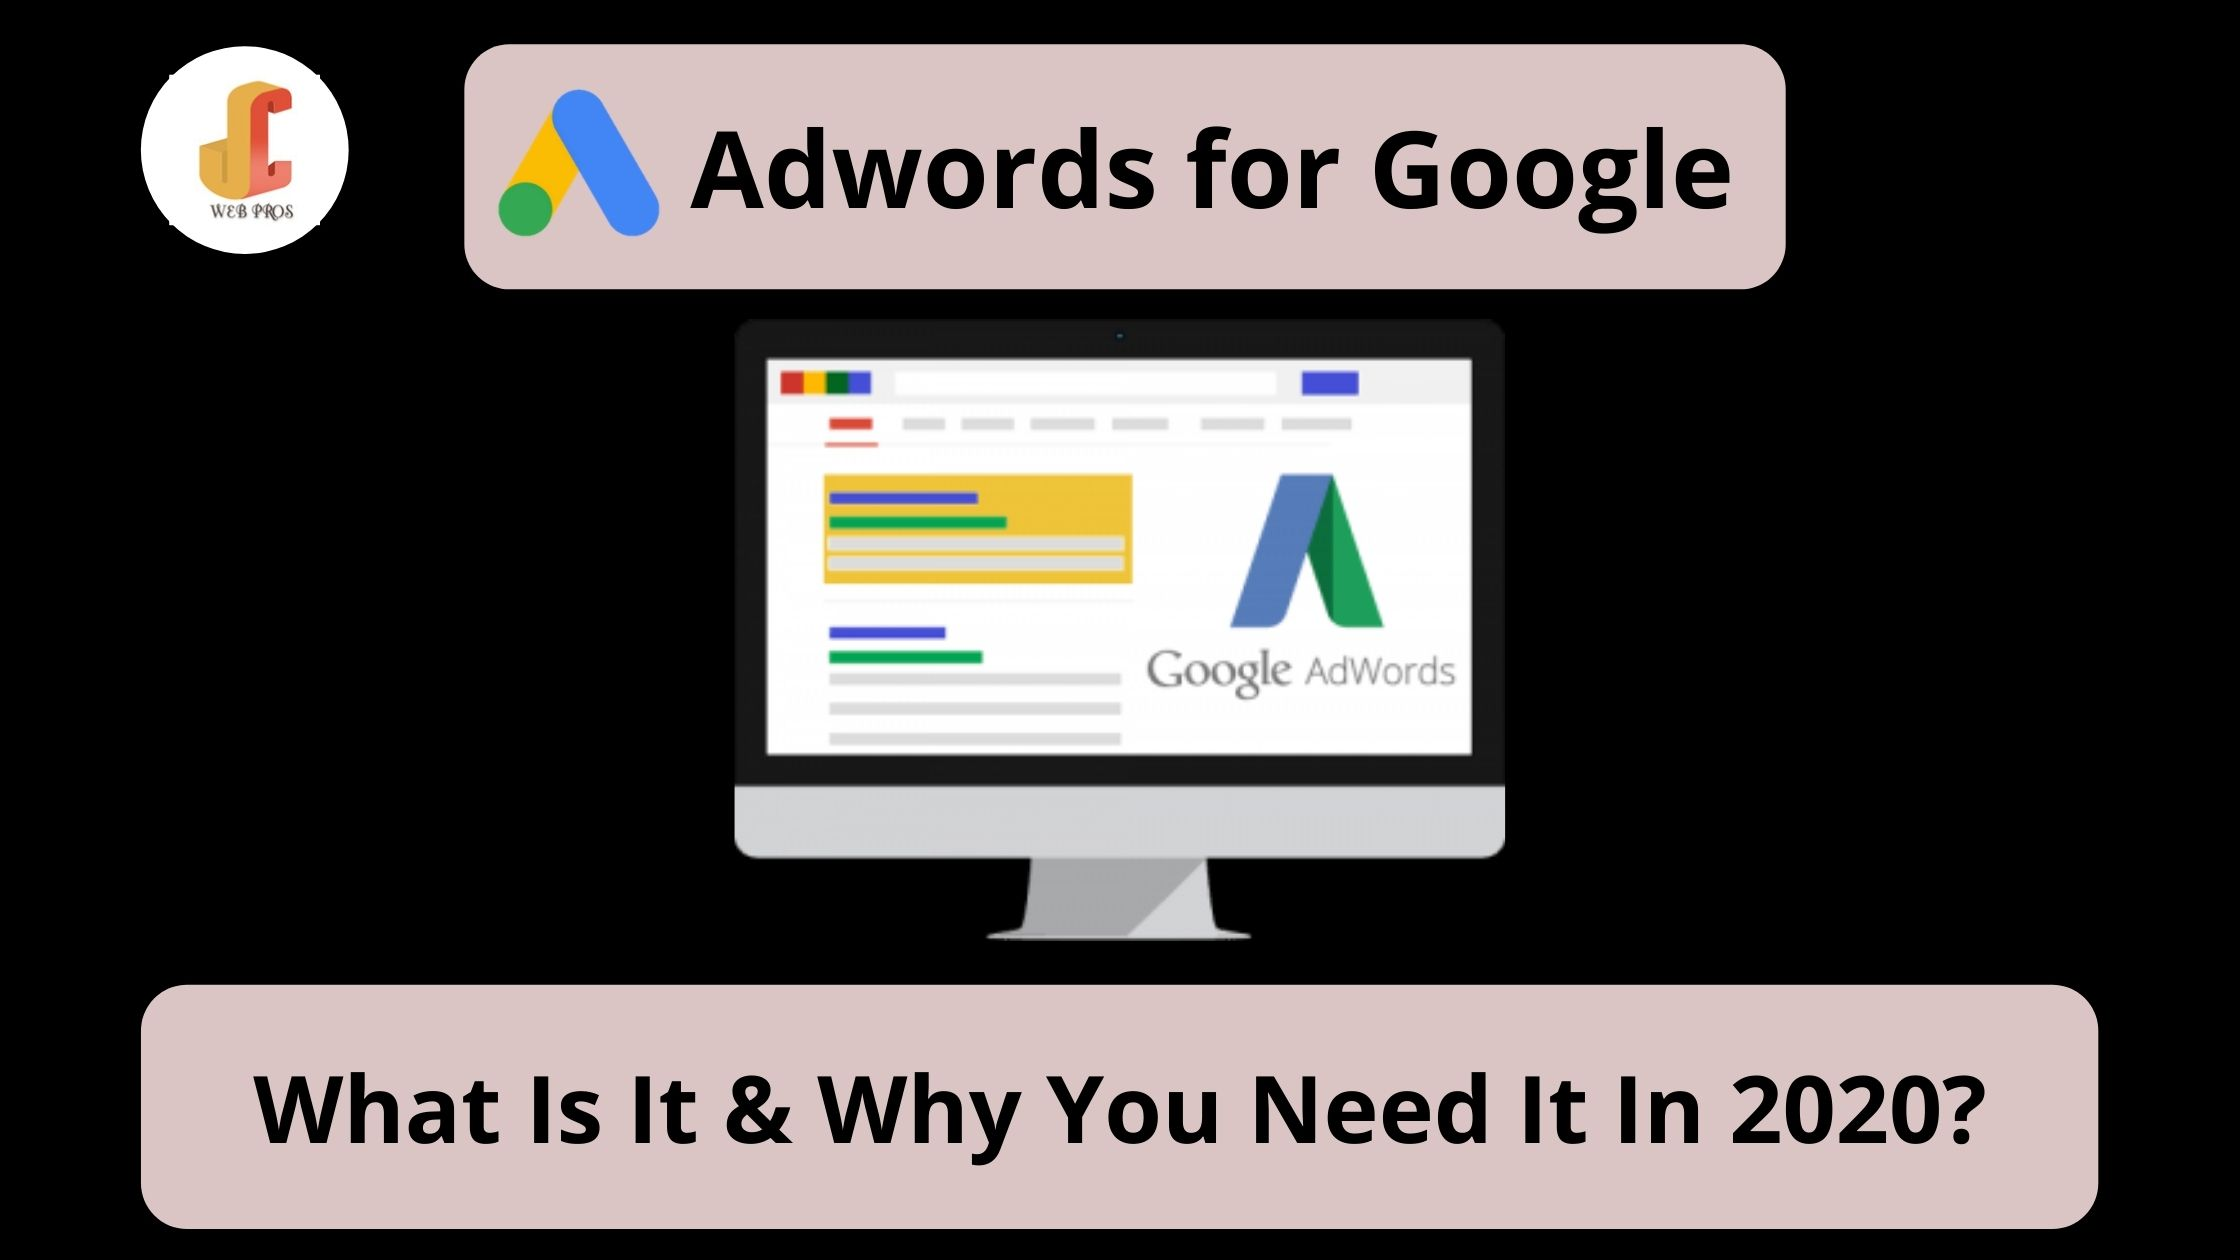 Adwords for Google – What Is It and Why You Need It?